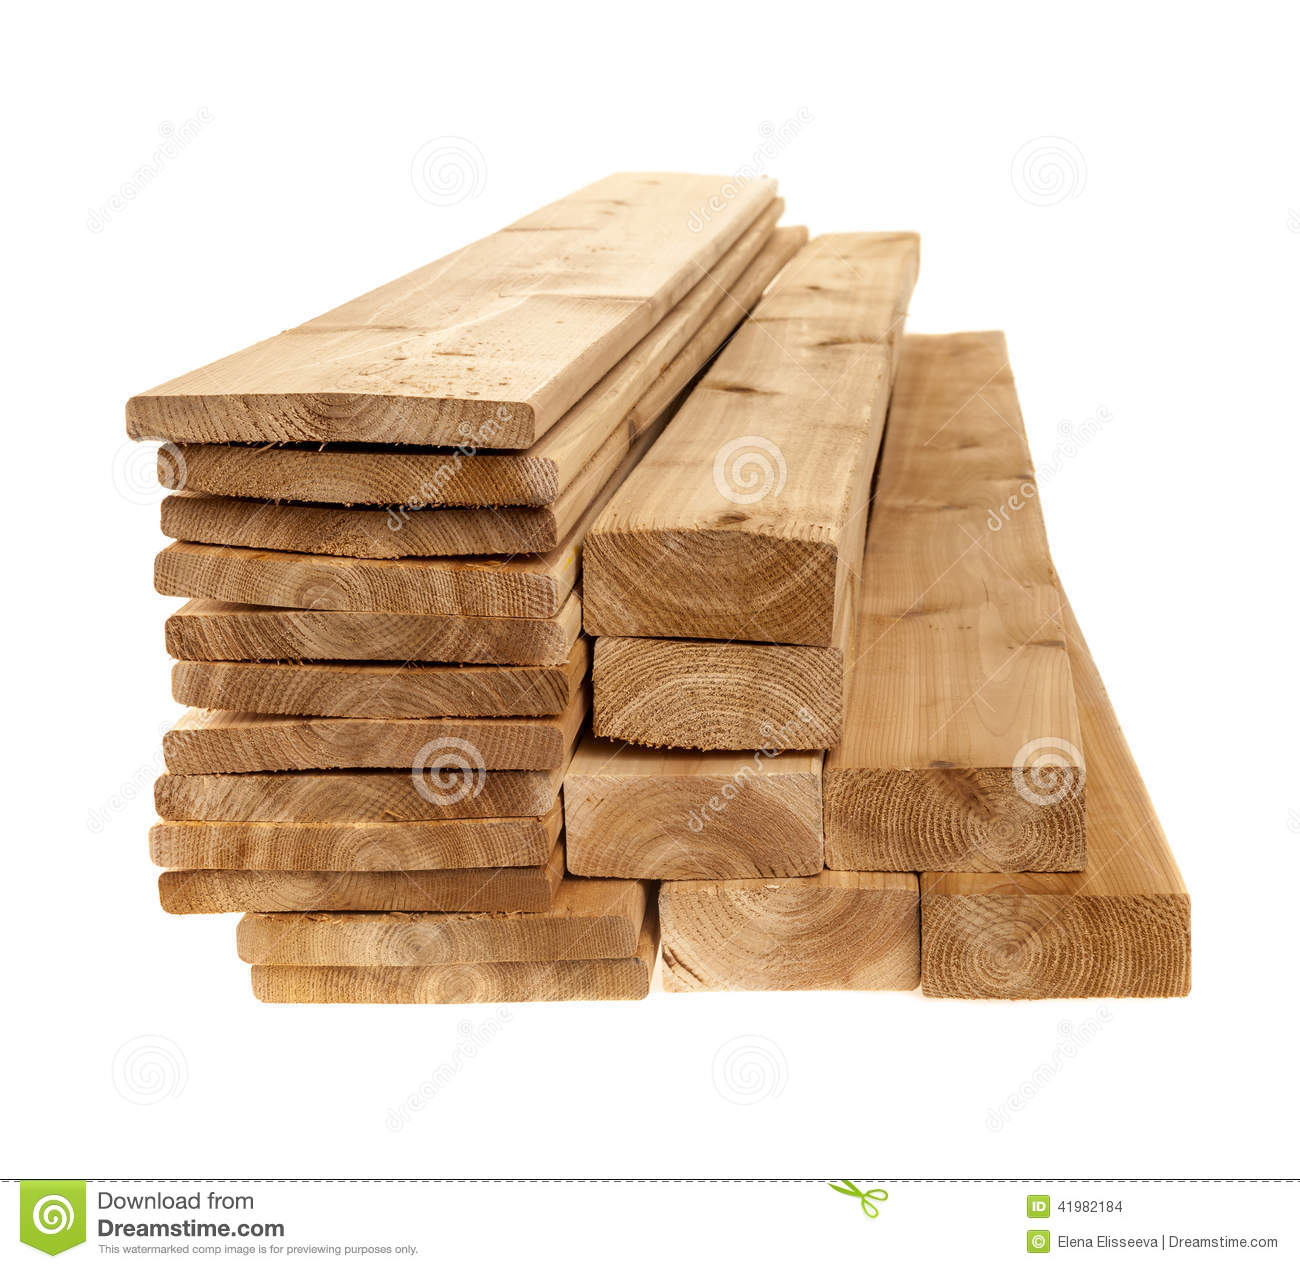 Lumber planks and boards stock photo image of